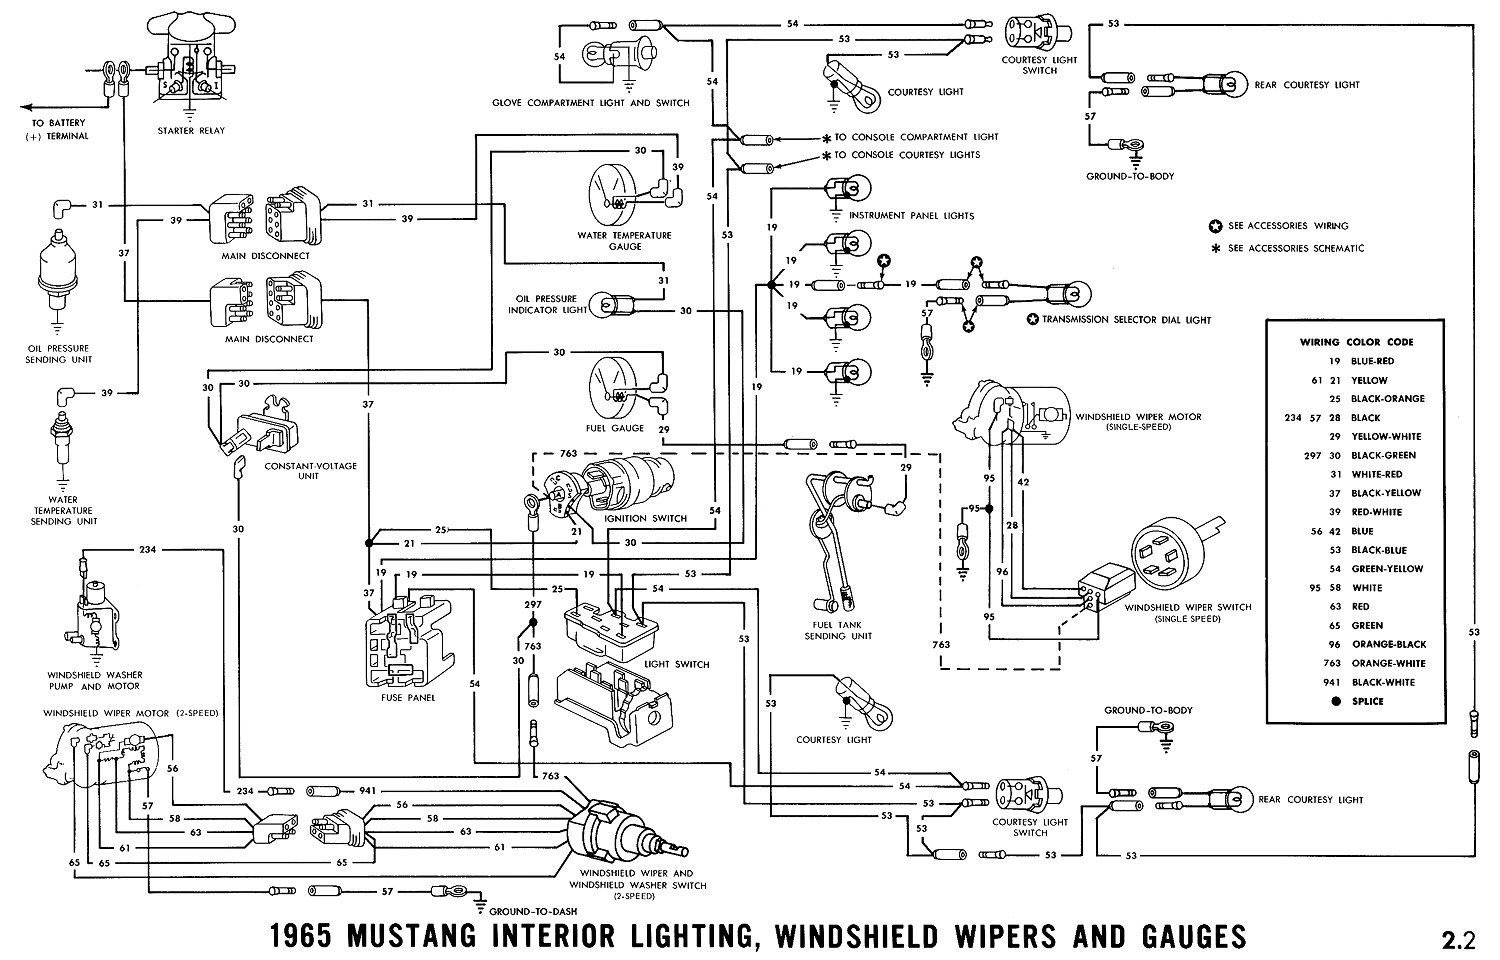 1965g 1965 mustang wiring diagrams average joe restoration 68 mustang fuse box diagram at honlapkeszites.co